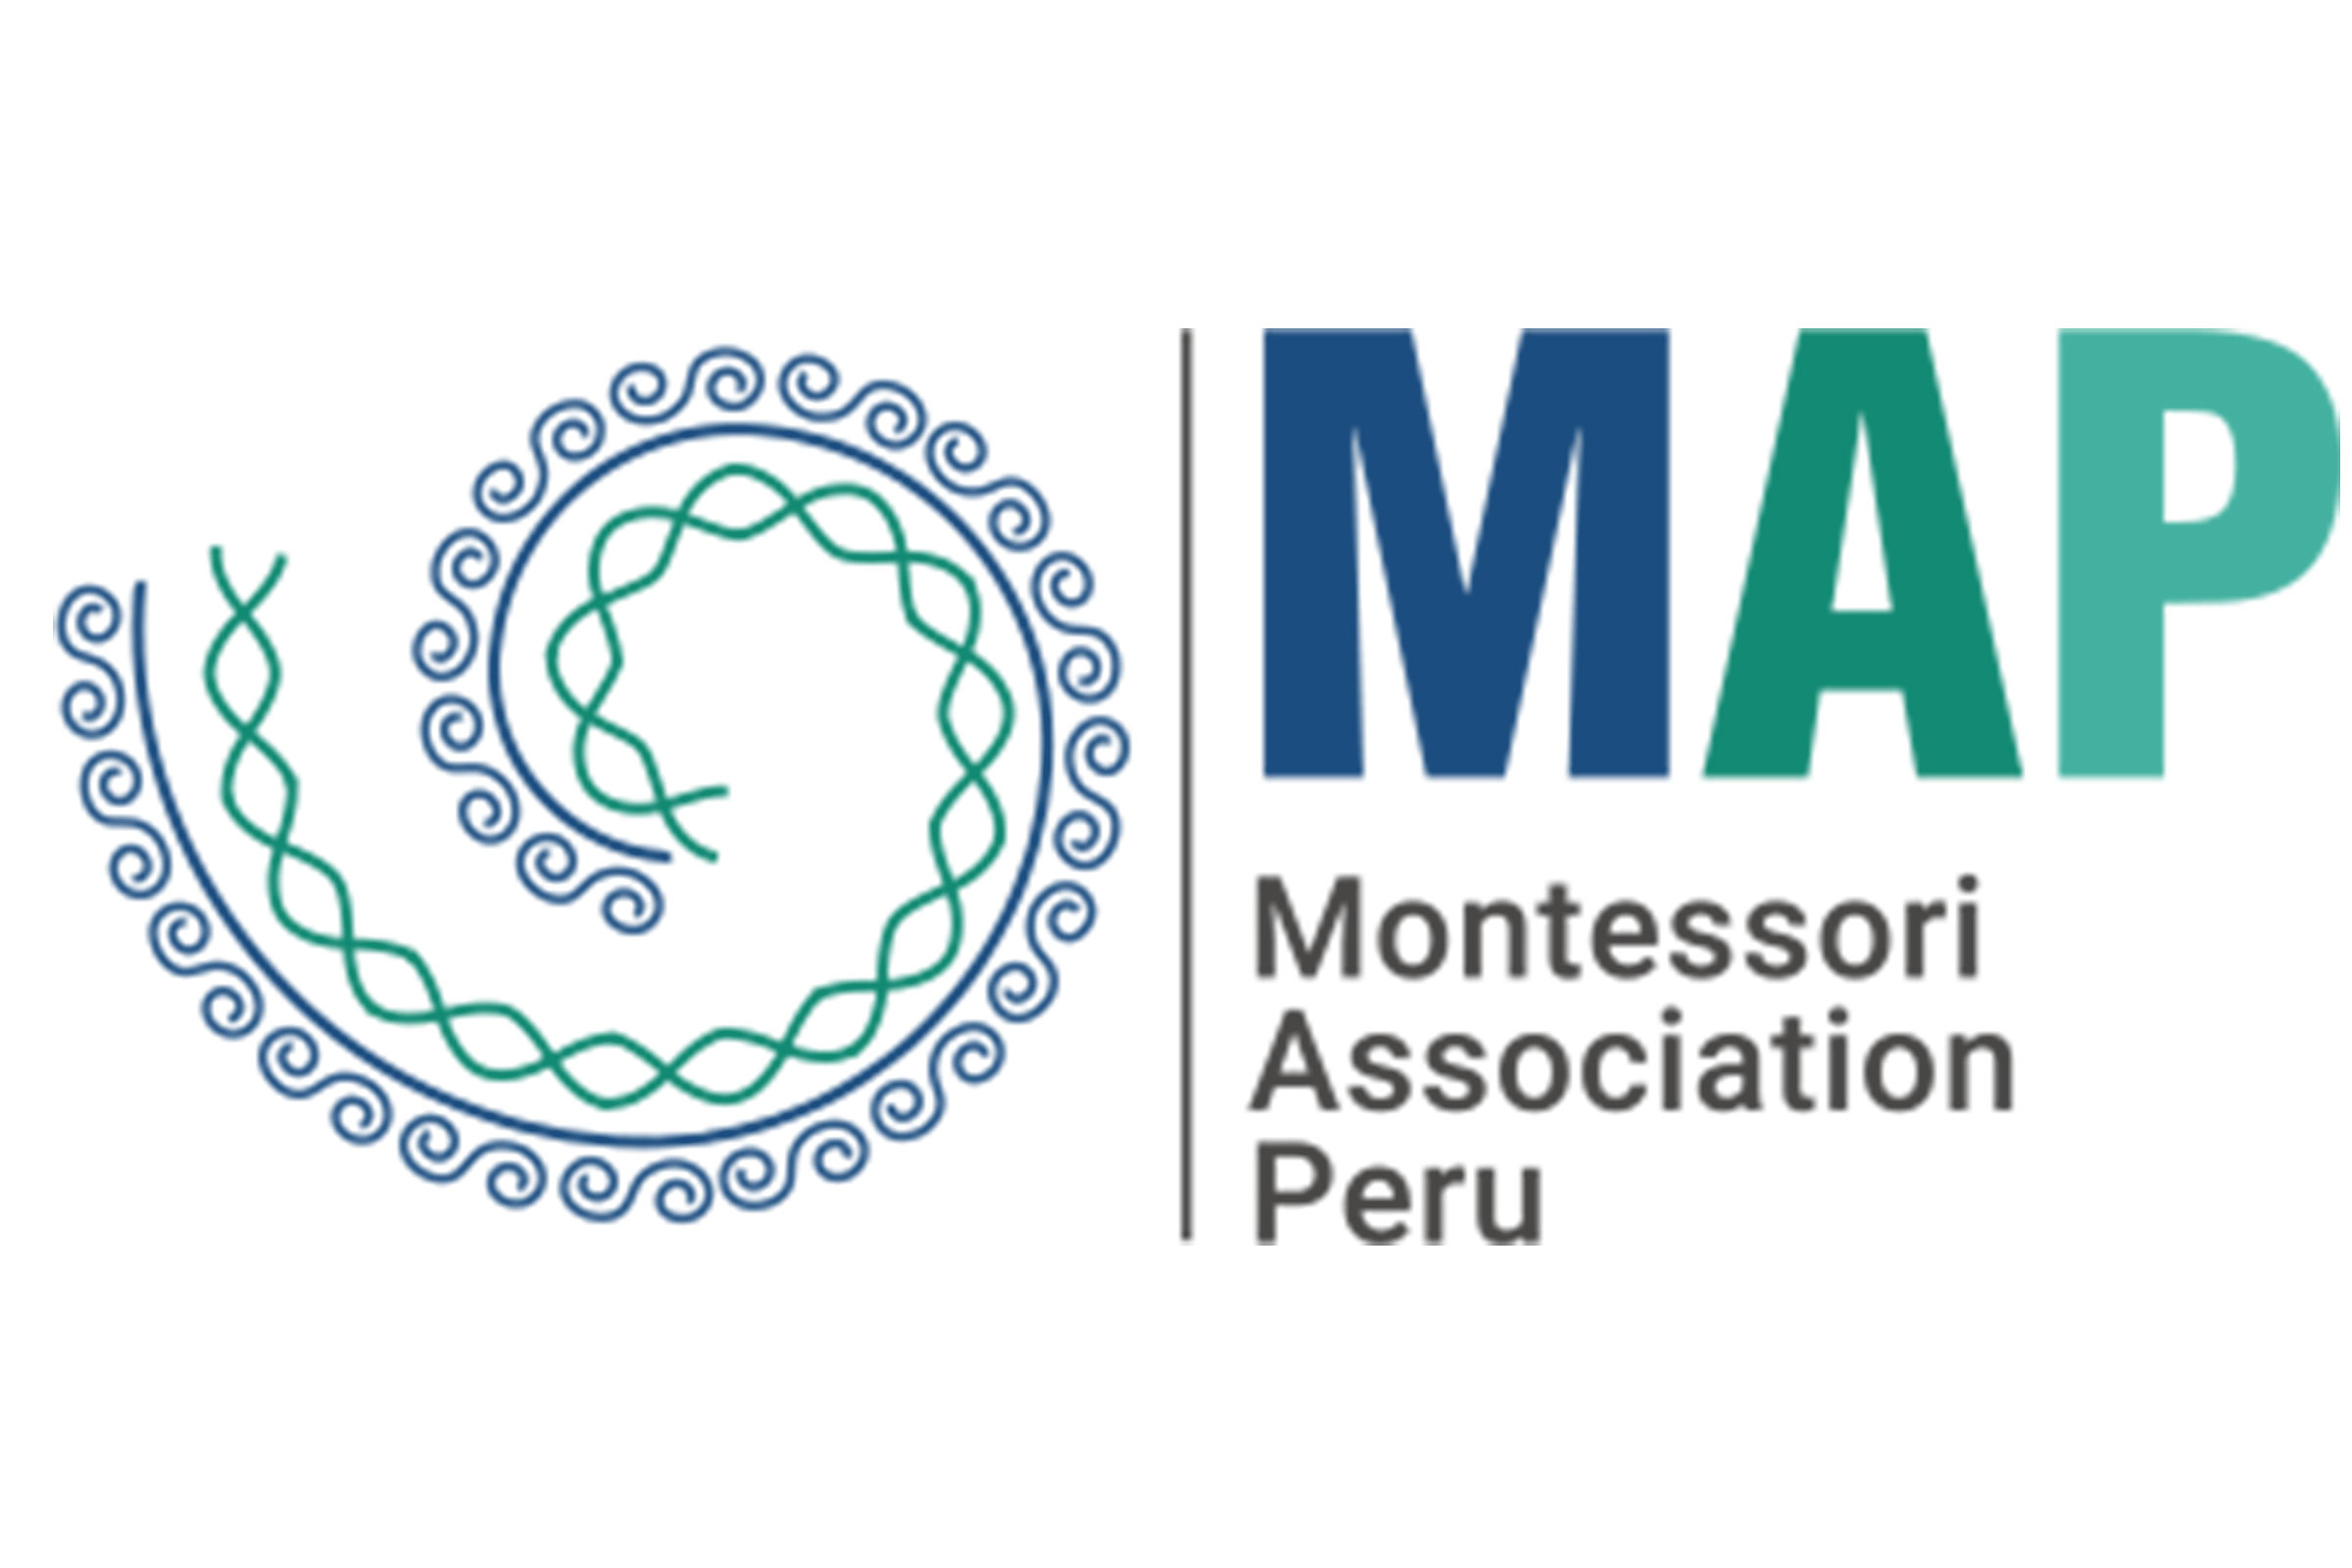 The Montessori Association Peru logo